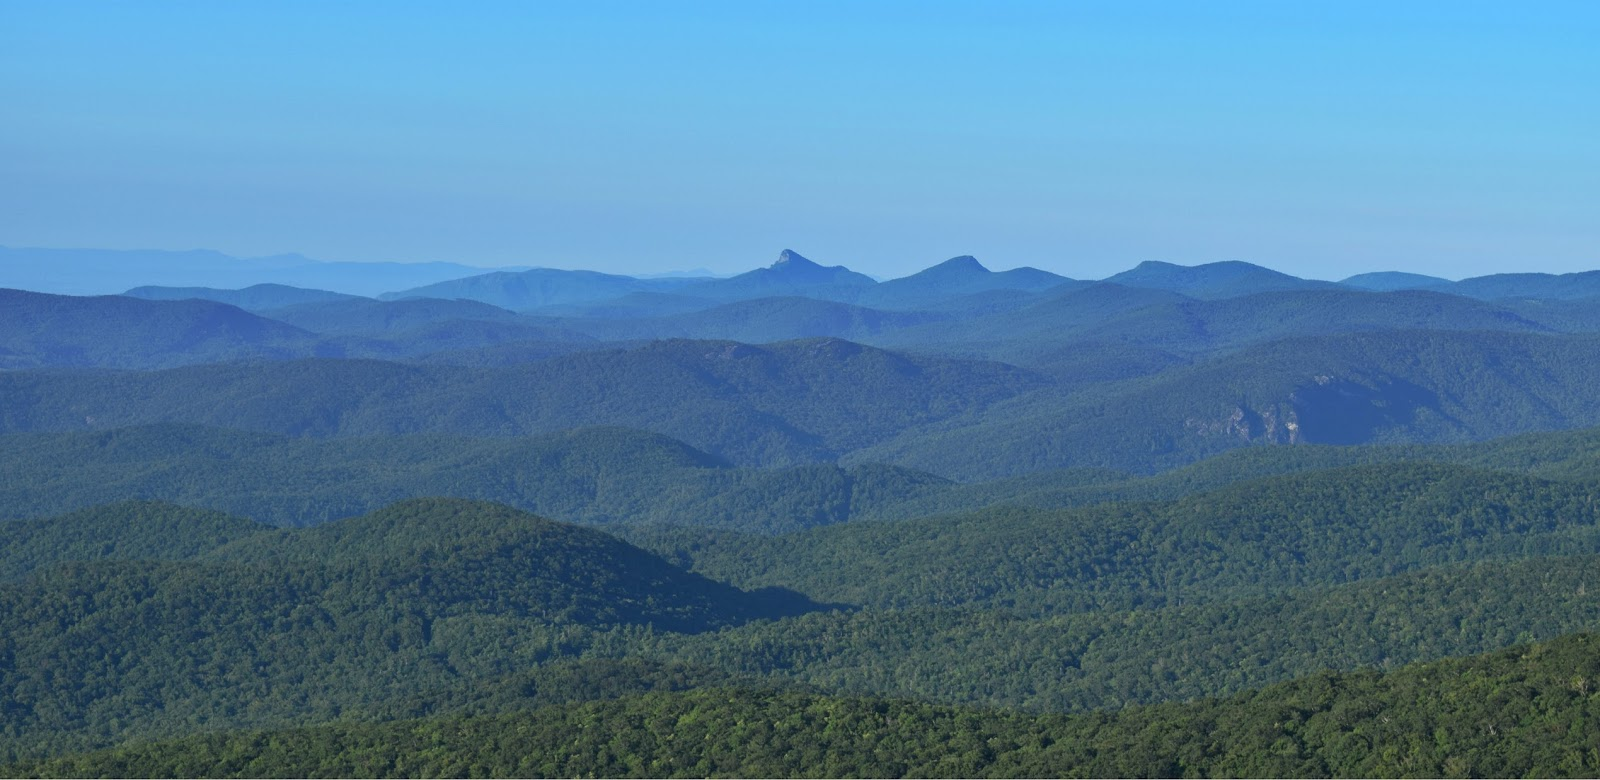 That pointy mountan is Linville Gorge Wilderness!